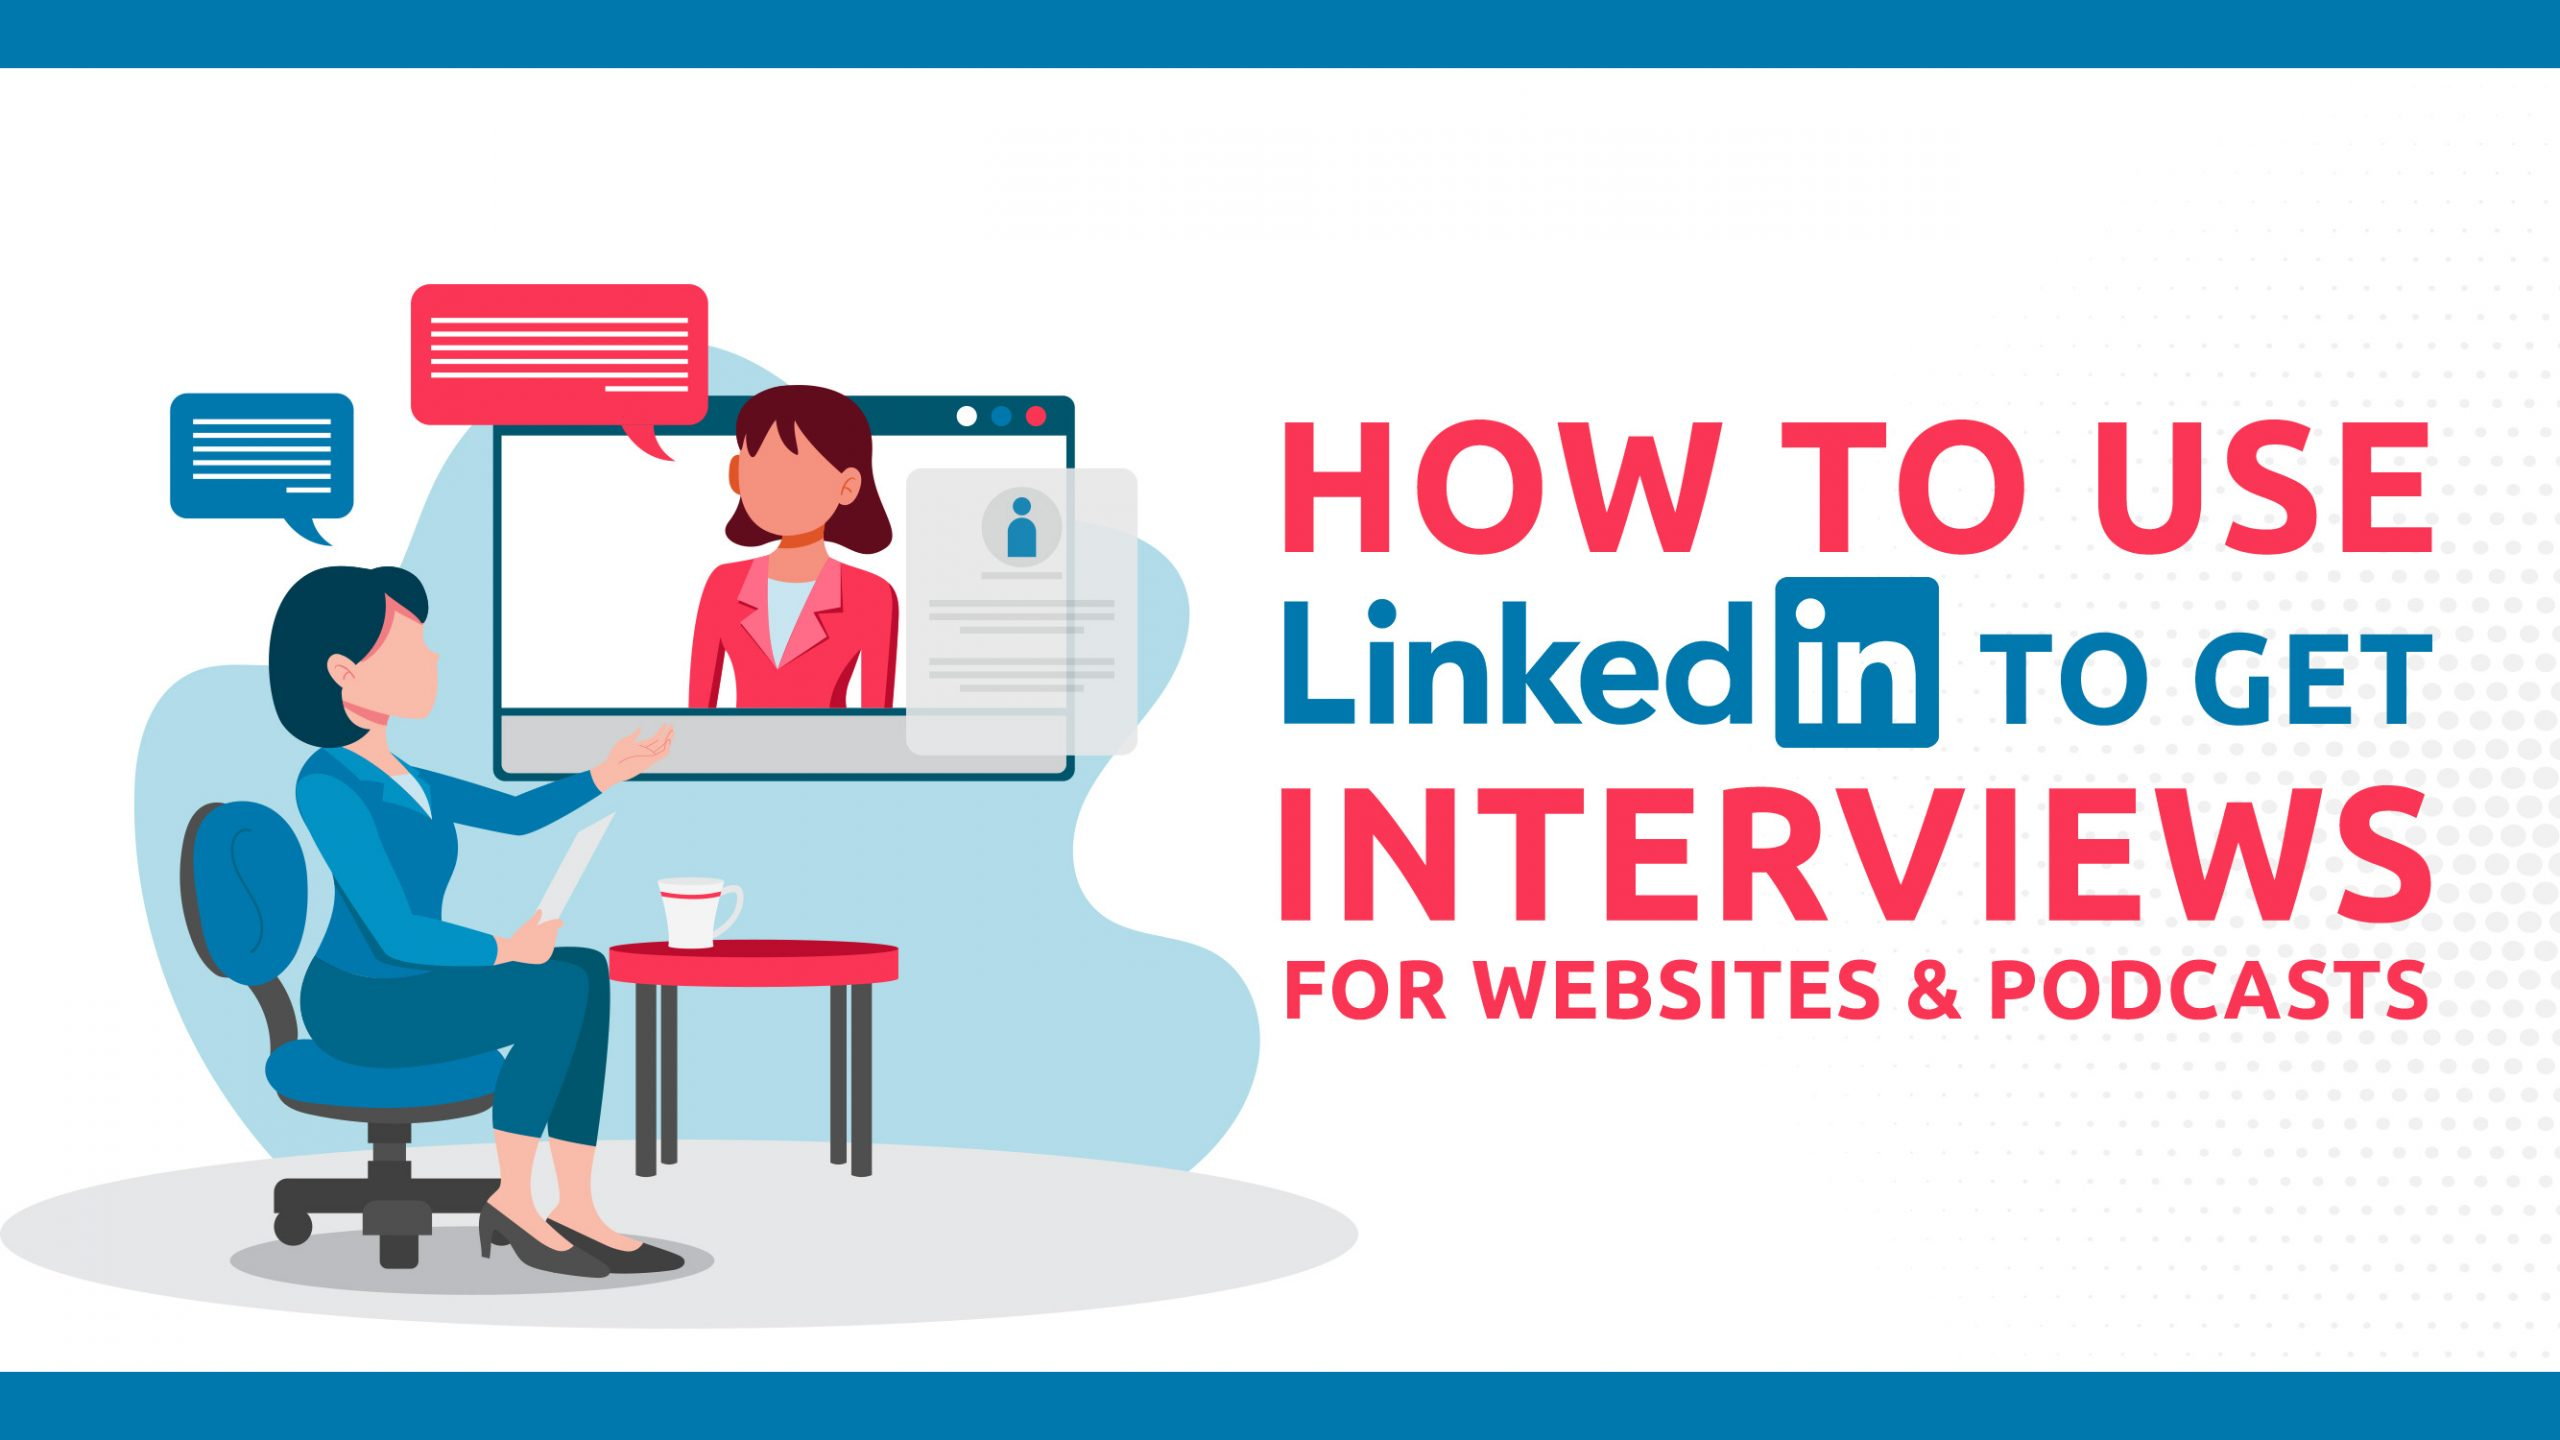 How To Use LinkedIn To Get Interviews For Websites & Podcasts